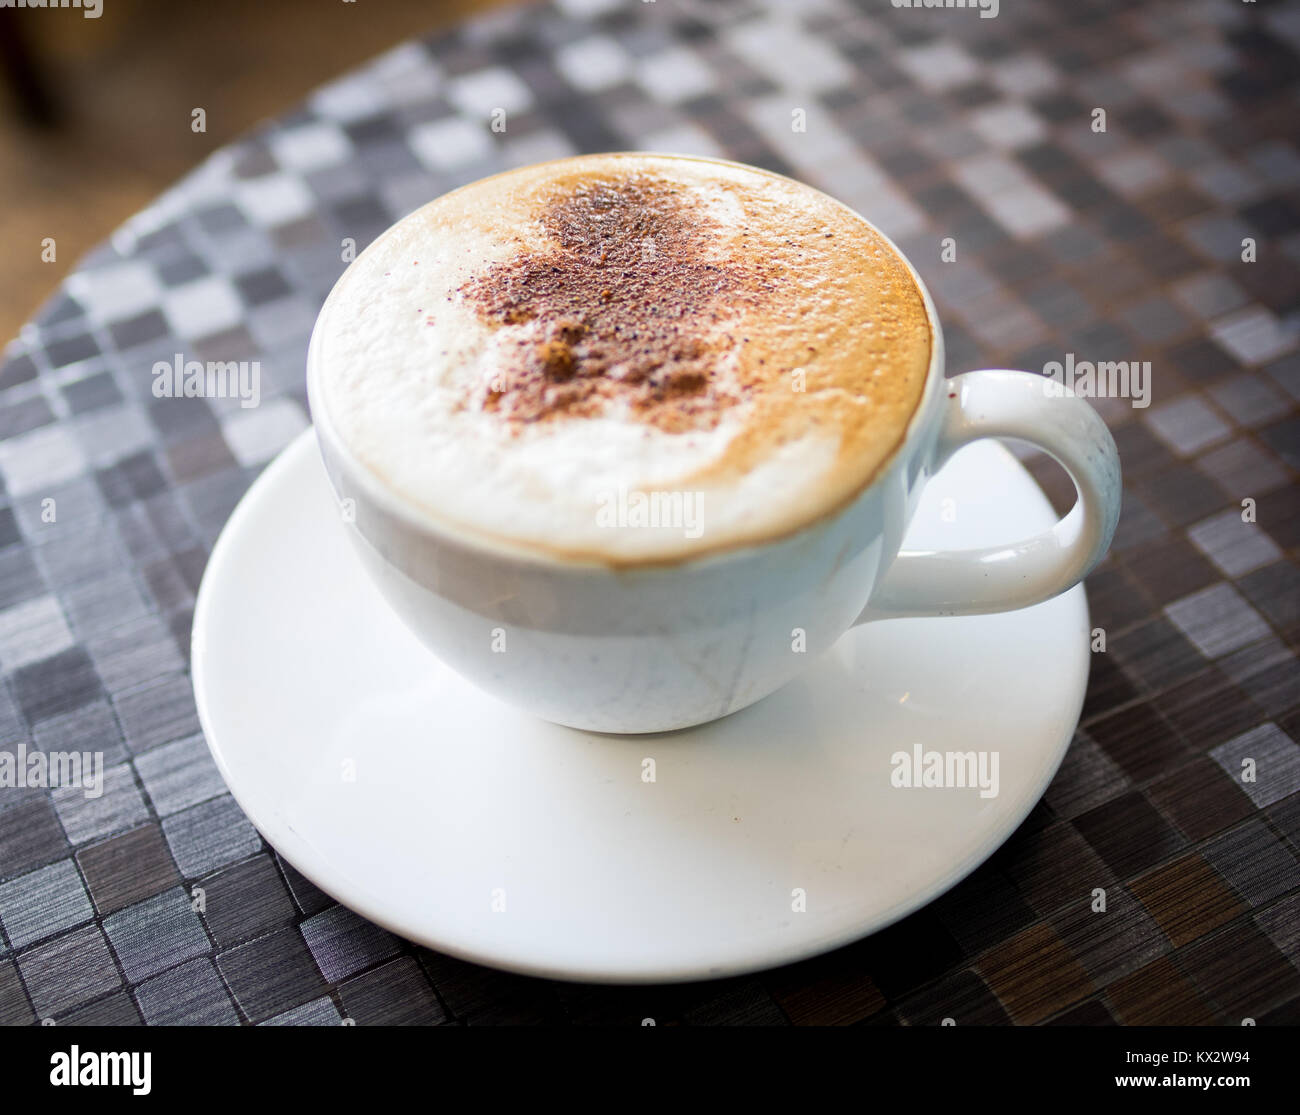 A gingerbread latte from d'Lish by Tish Cafe in Saskatoon, Saskatchewan, Canada. - Stock Image